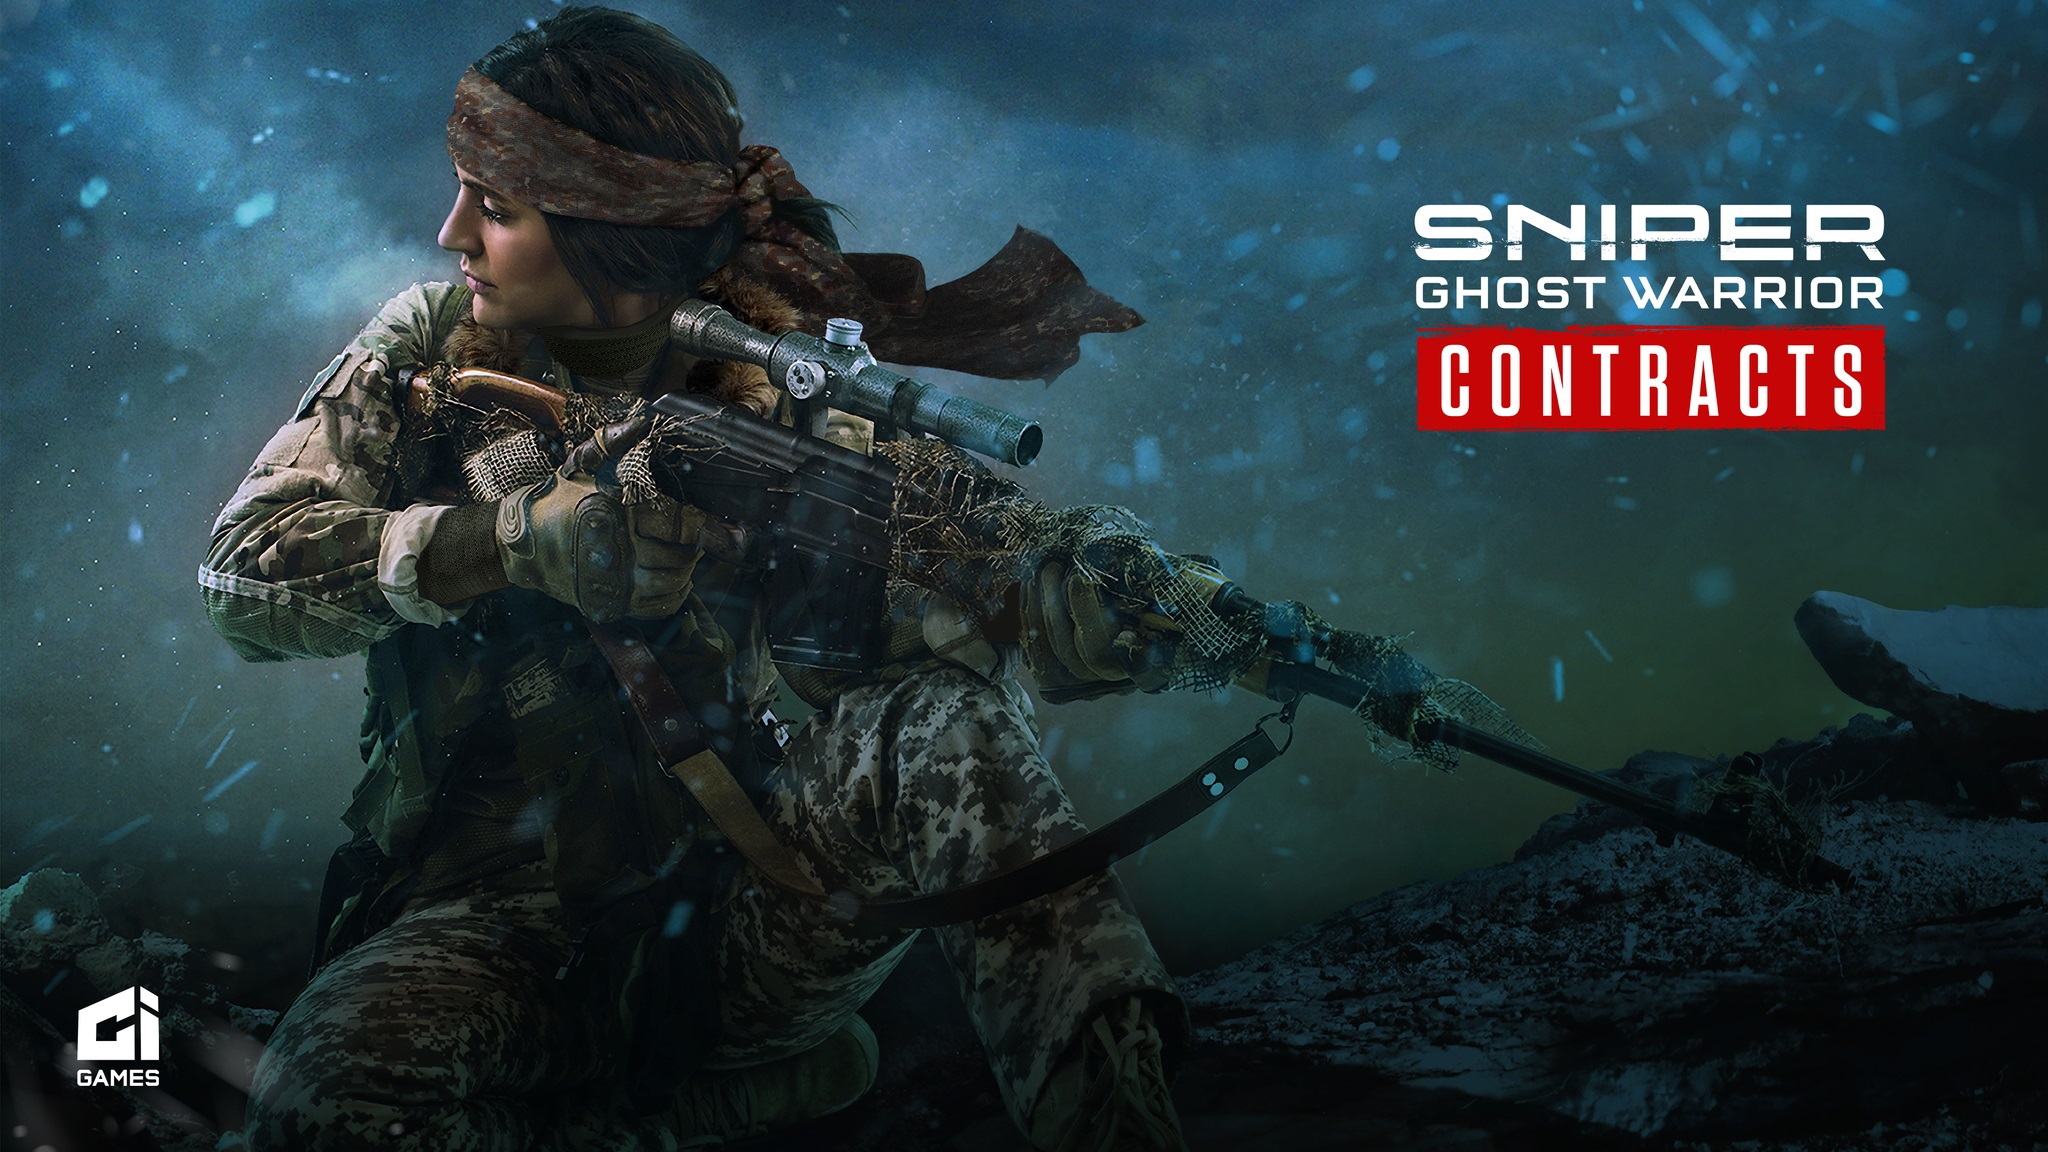 There's a new Sniper Ghost Warrior game, and it only focuses on the sniping screenshot